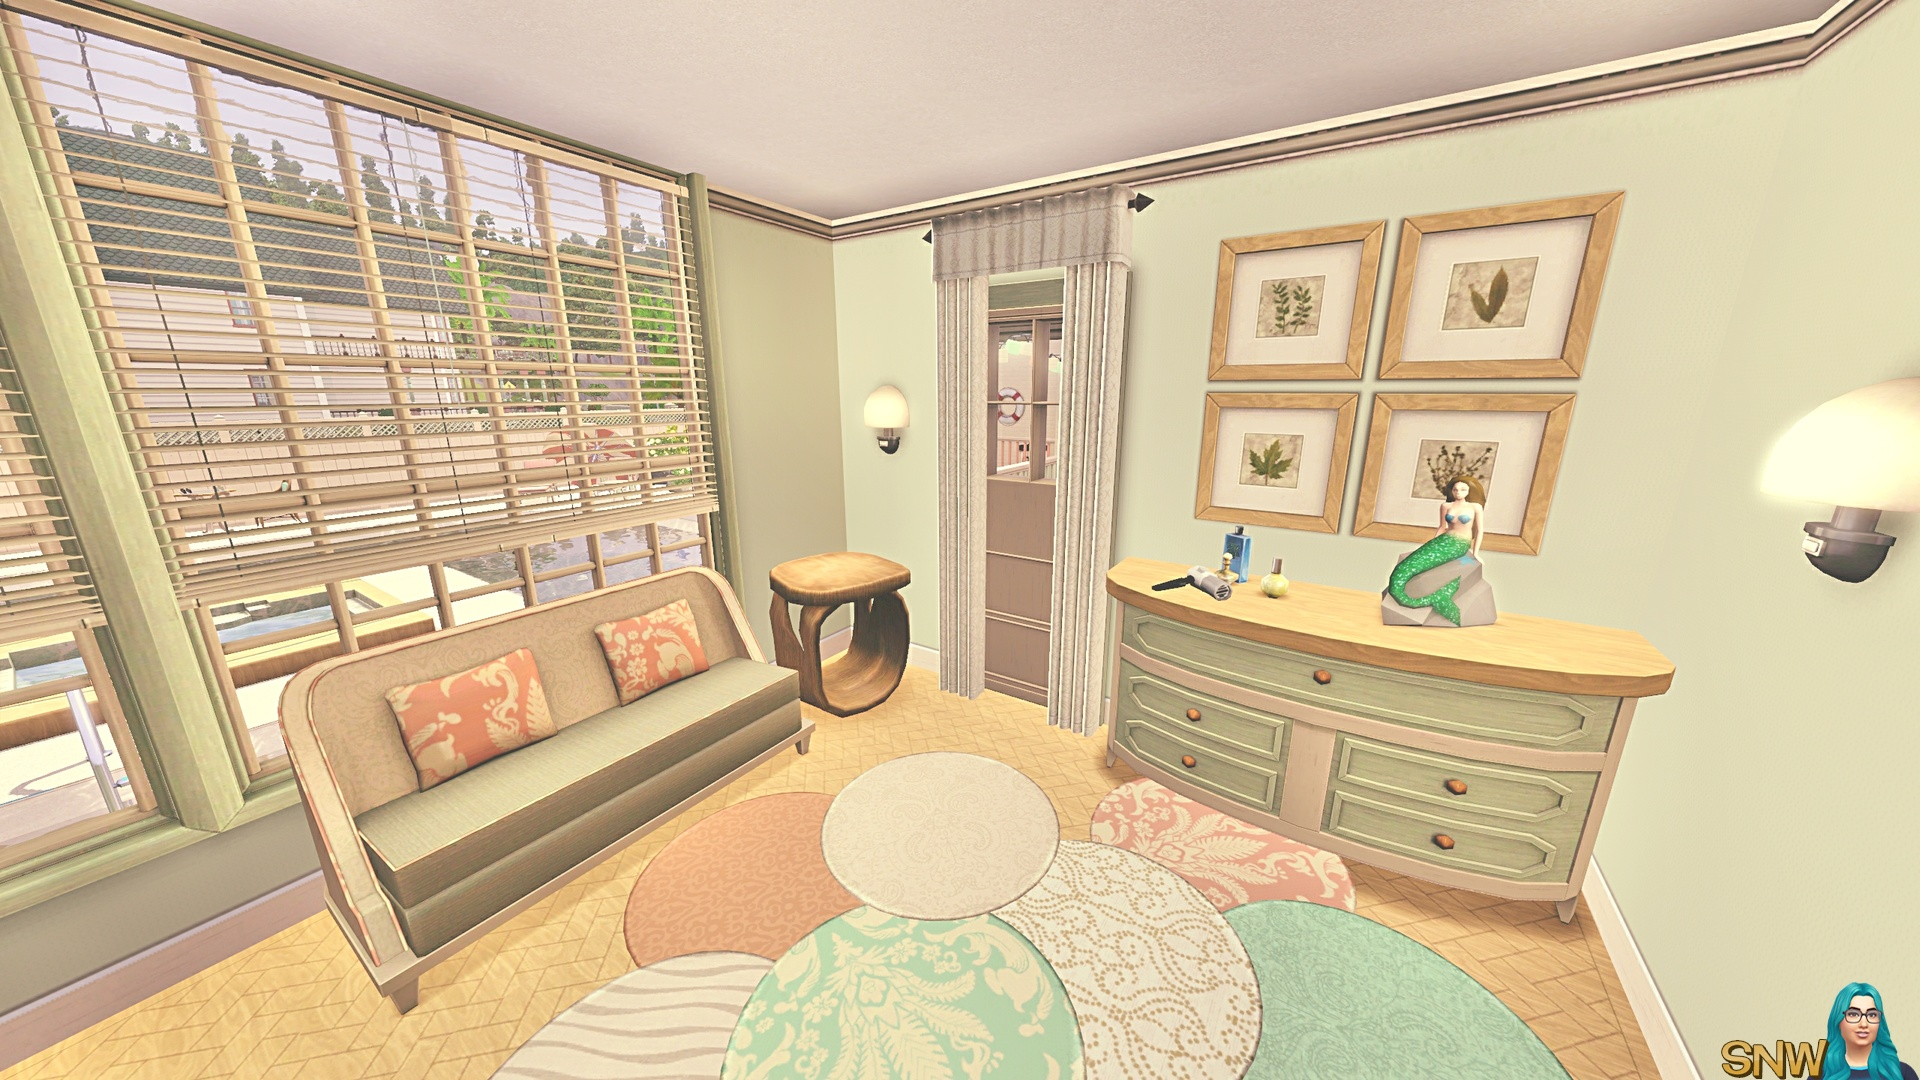 Minty & Peach Beach House | SNW | SimsNetwork.com